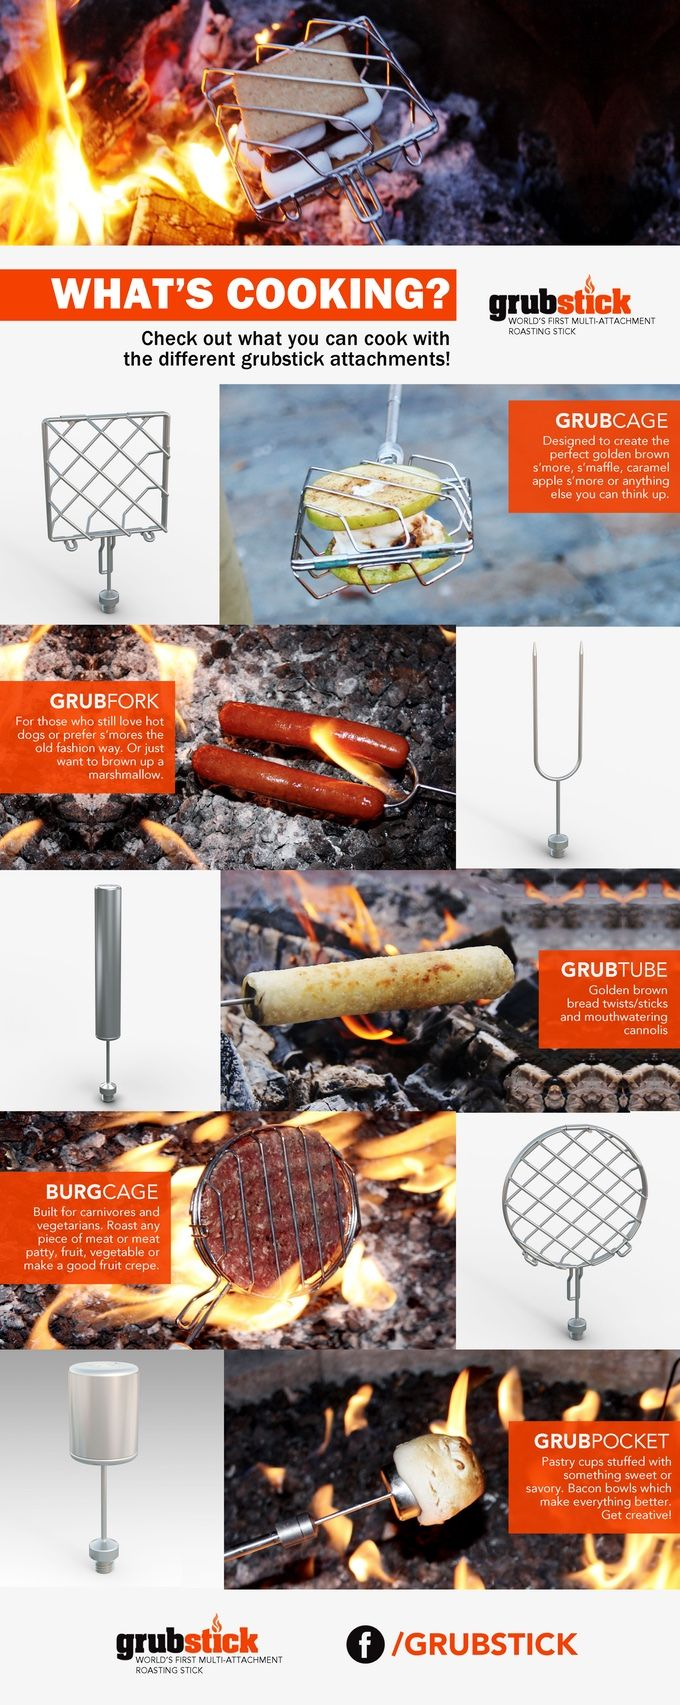 Grubstick - the Swiss army knife of roasting sticks takes open fire roasting to a whole new level.